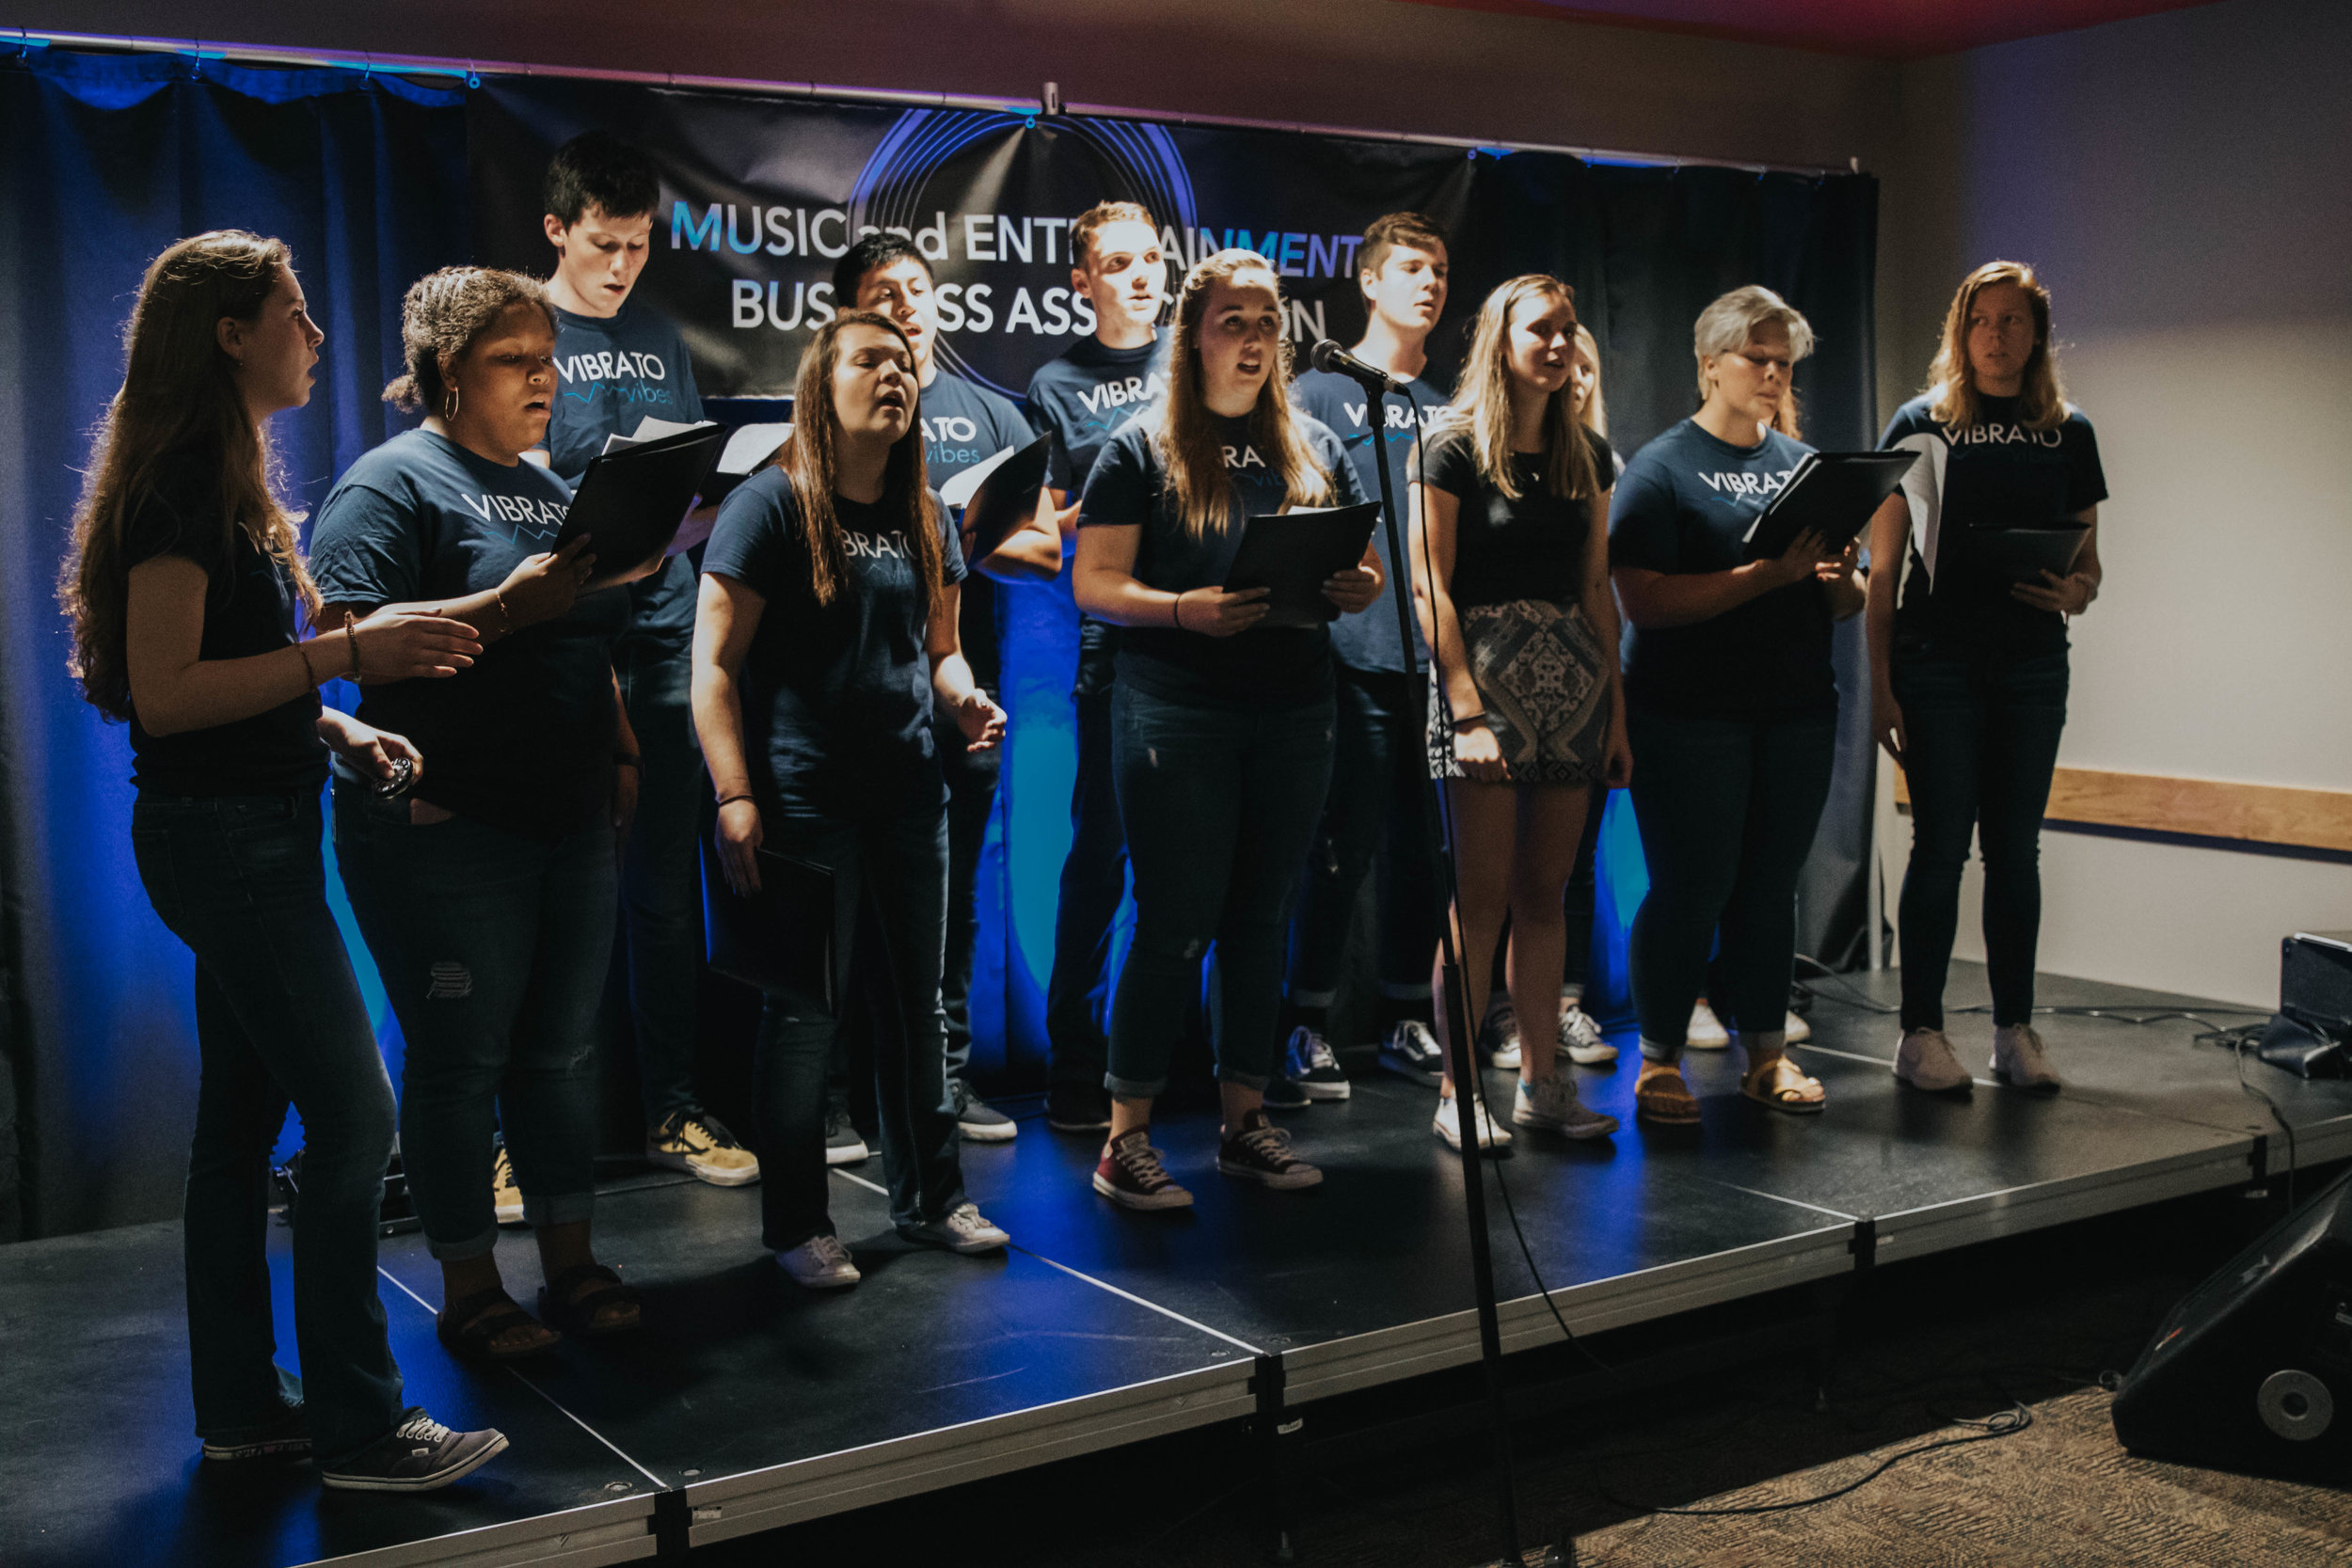 Vibrato Vibes performing a haunting rendition of Fix You by Coldplay; MEBA member and performer Ryleigh Spetoskey featured third from right.  Photo Courtesy: Veronica Anderson